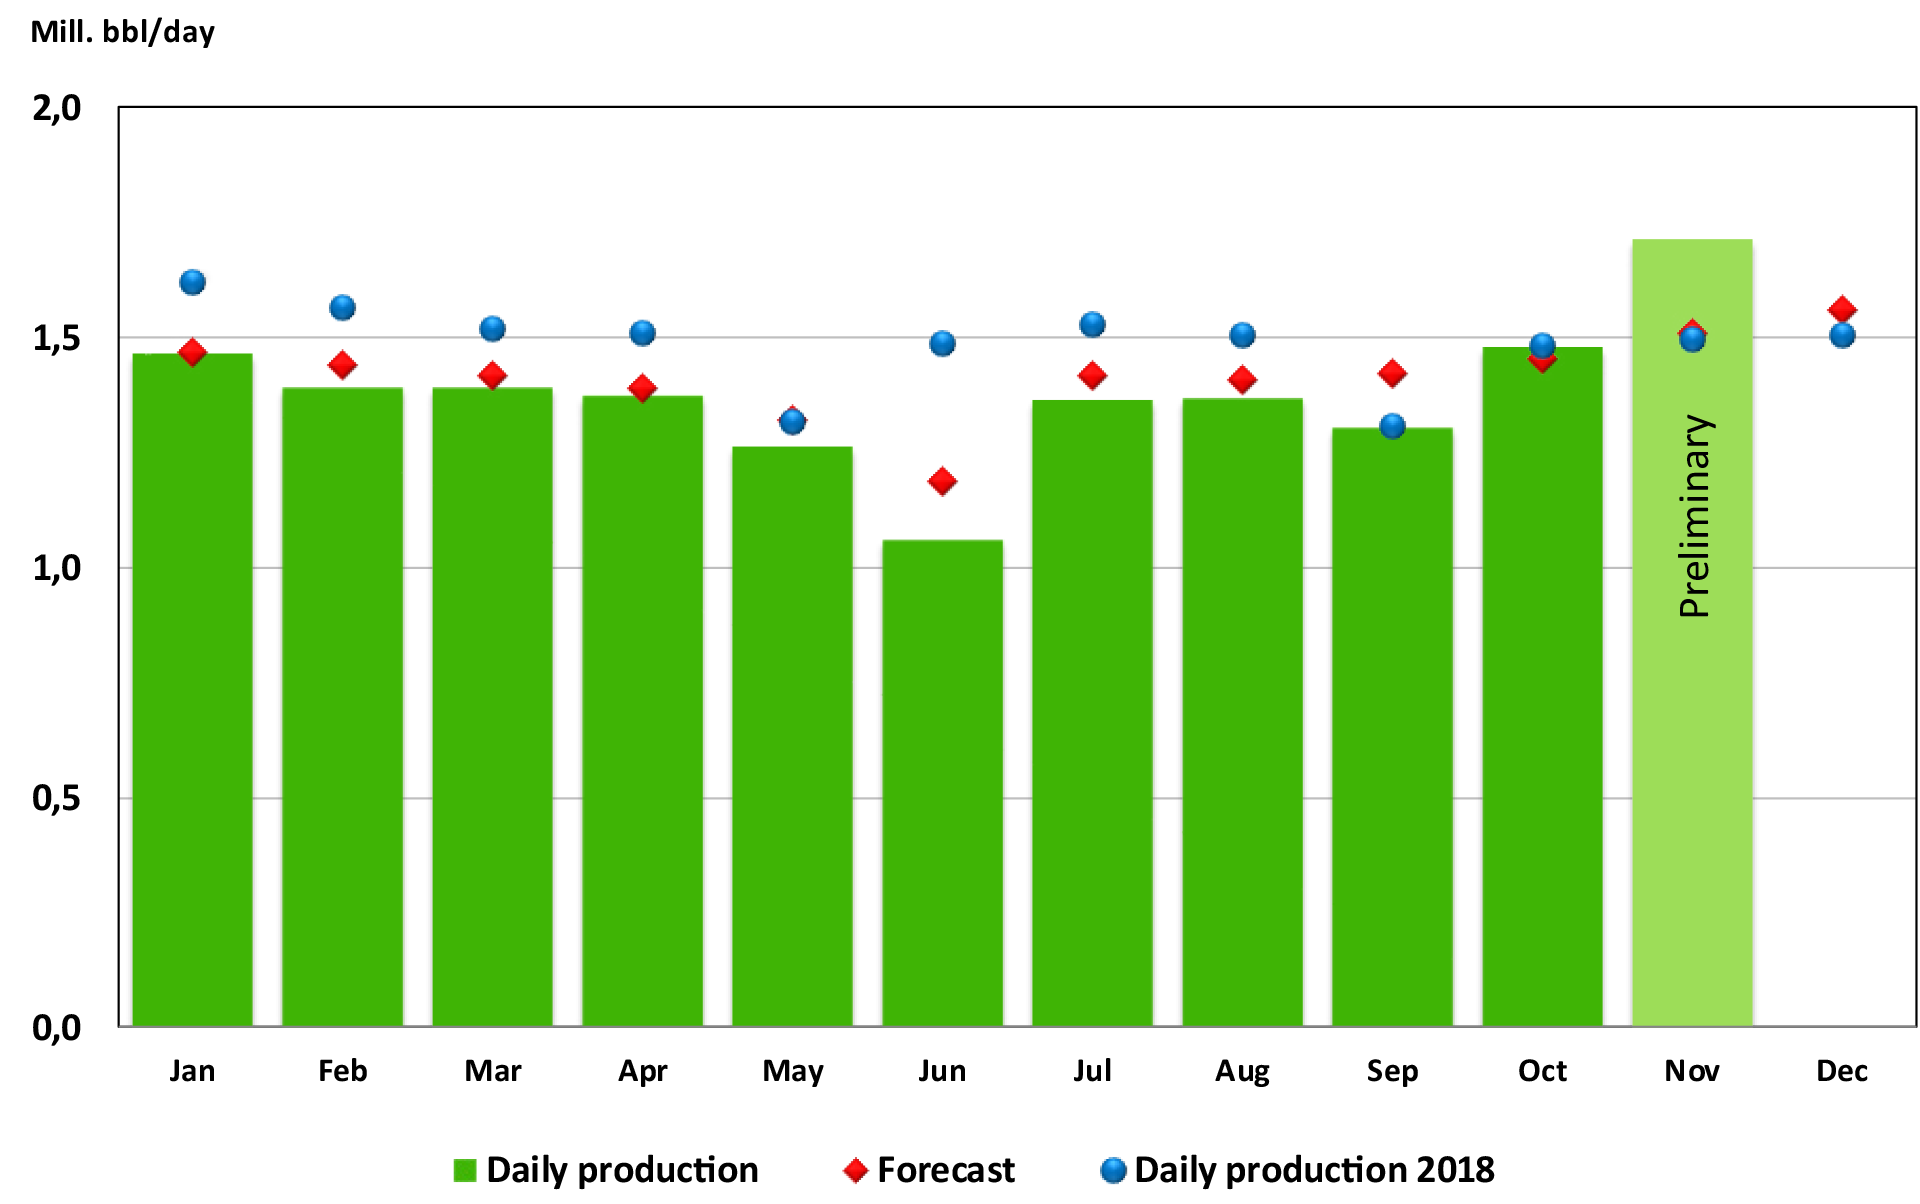 Oil production 2019